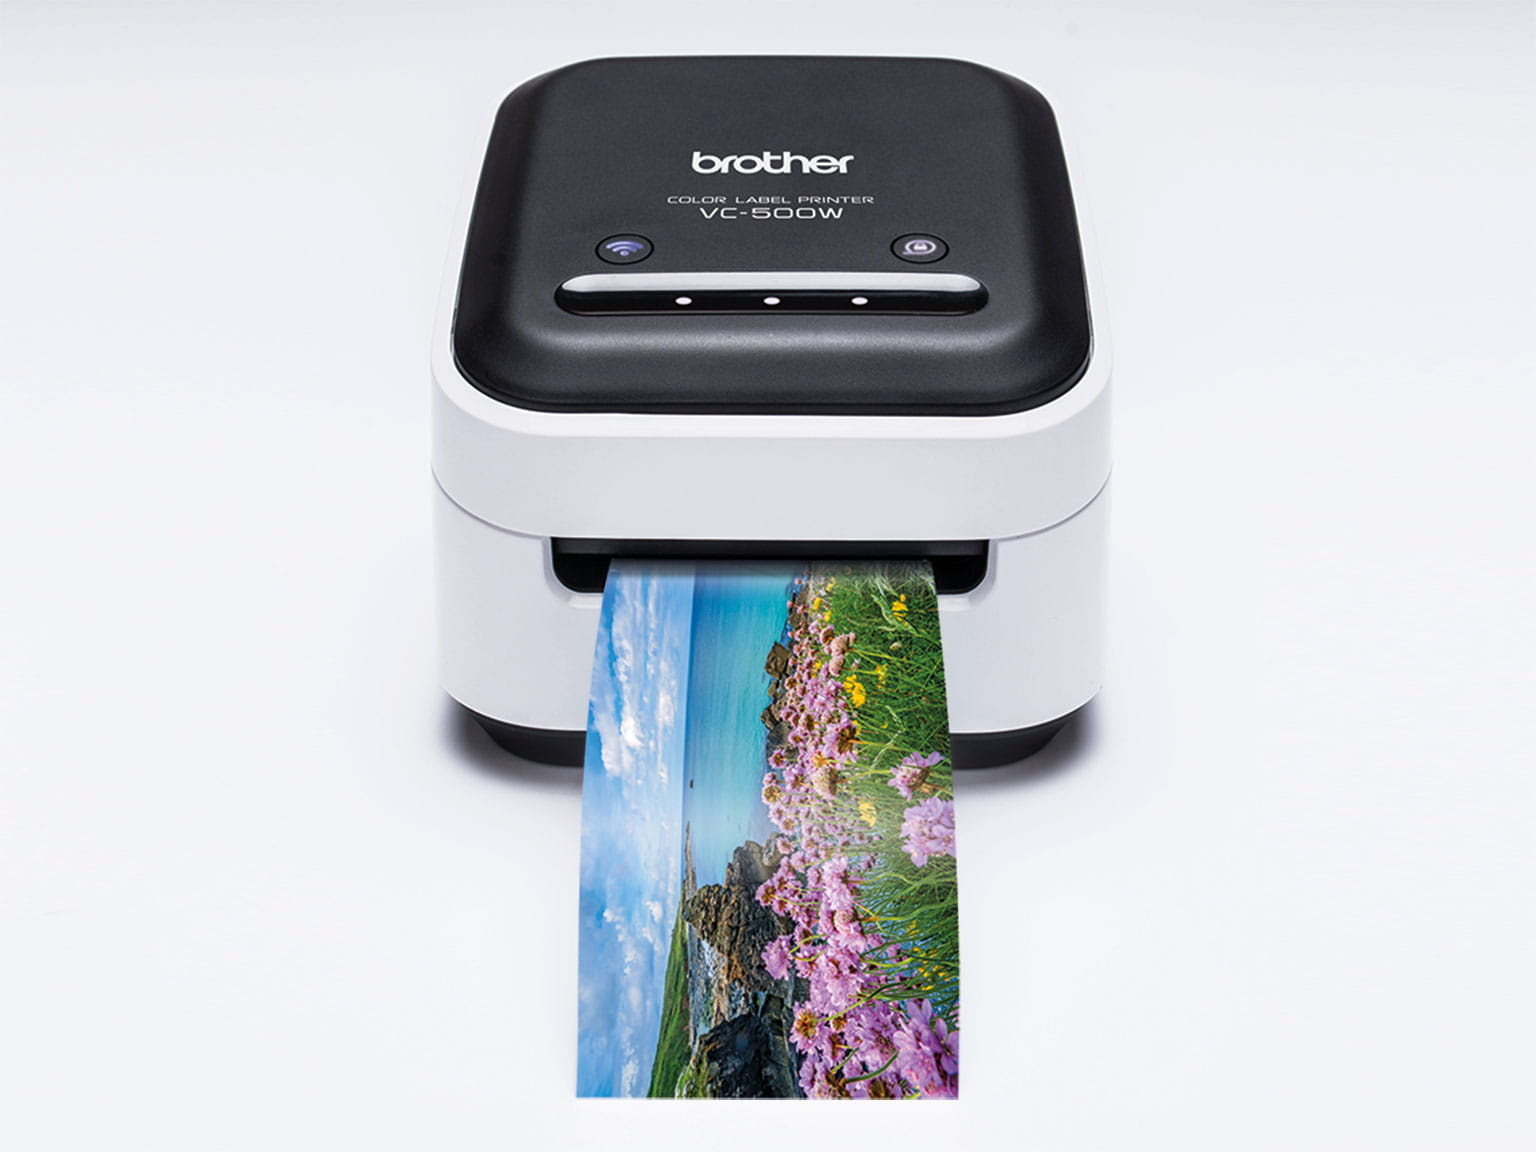 Panoramic photo printing from the Brother VC-500W colour label printer